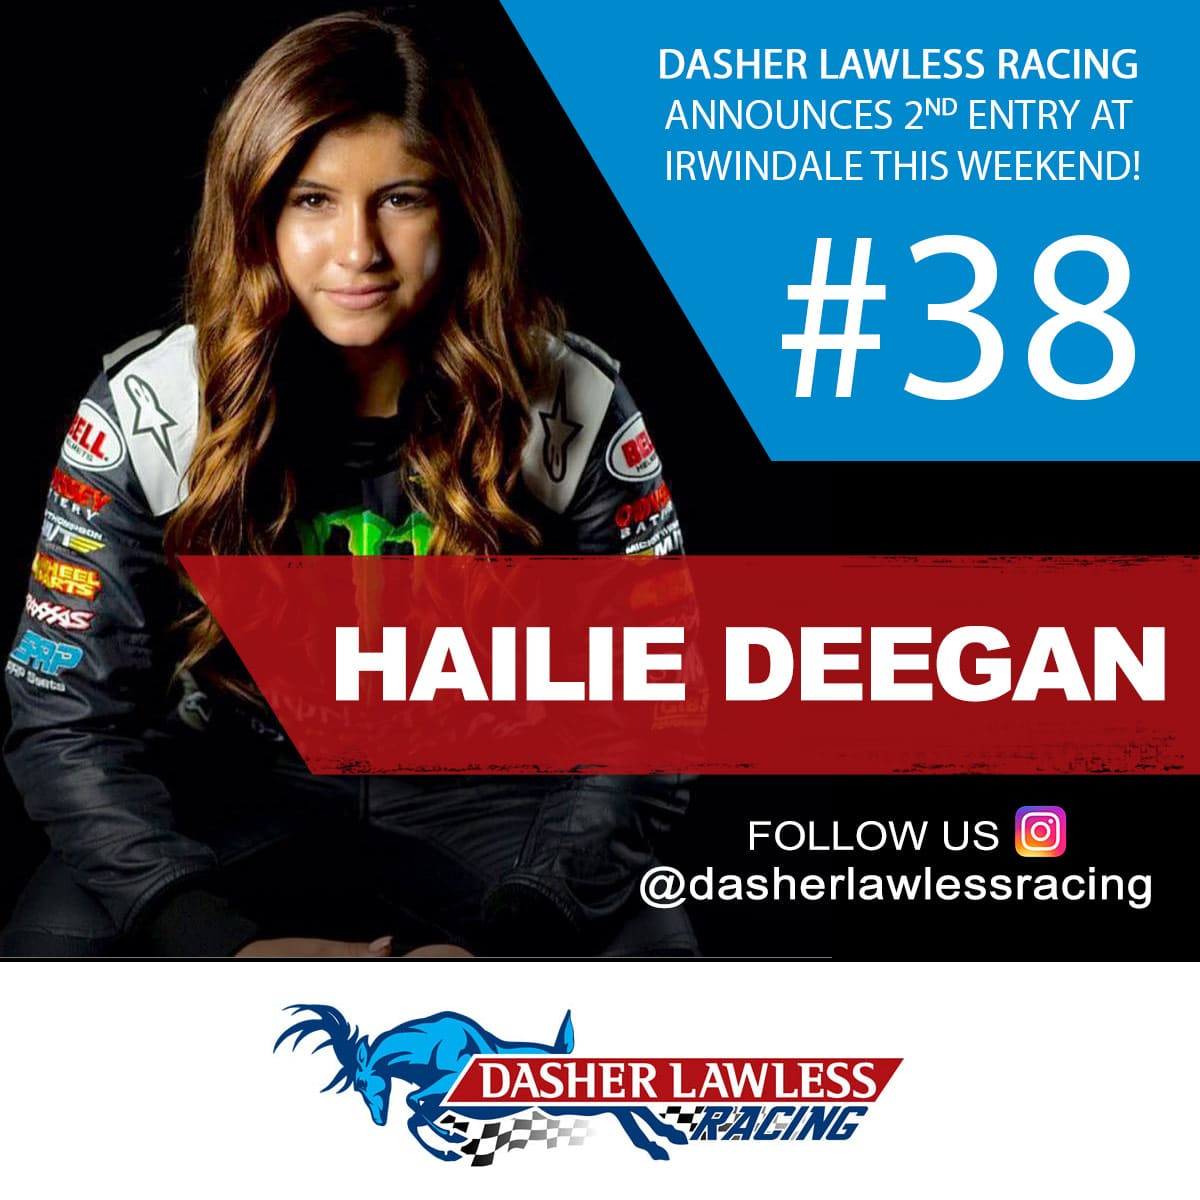 Dasher Lawless Racing showcases a 2nd entry this week with driver Hailie Deegan